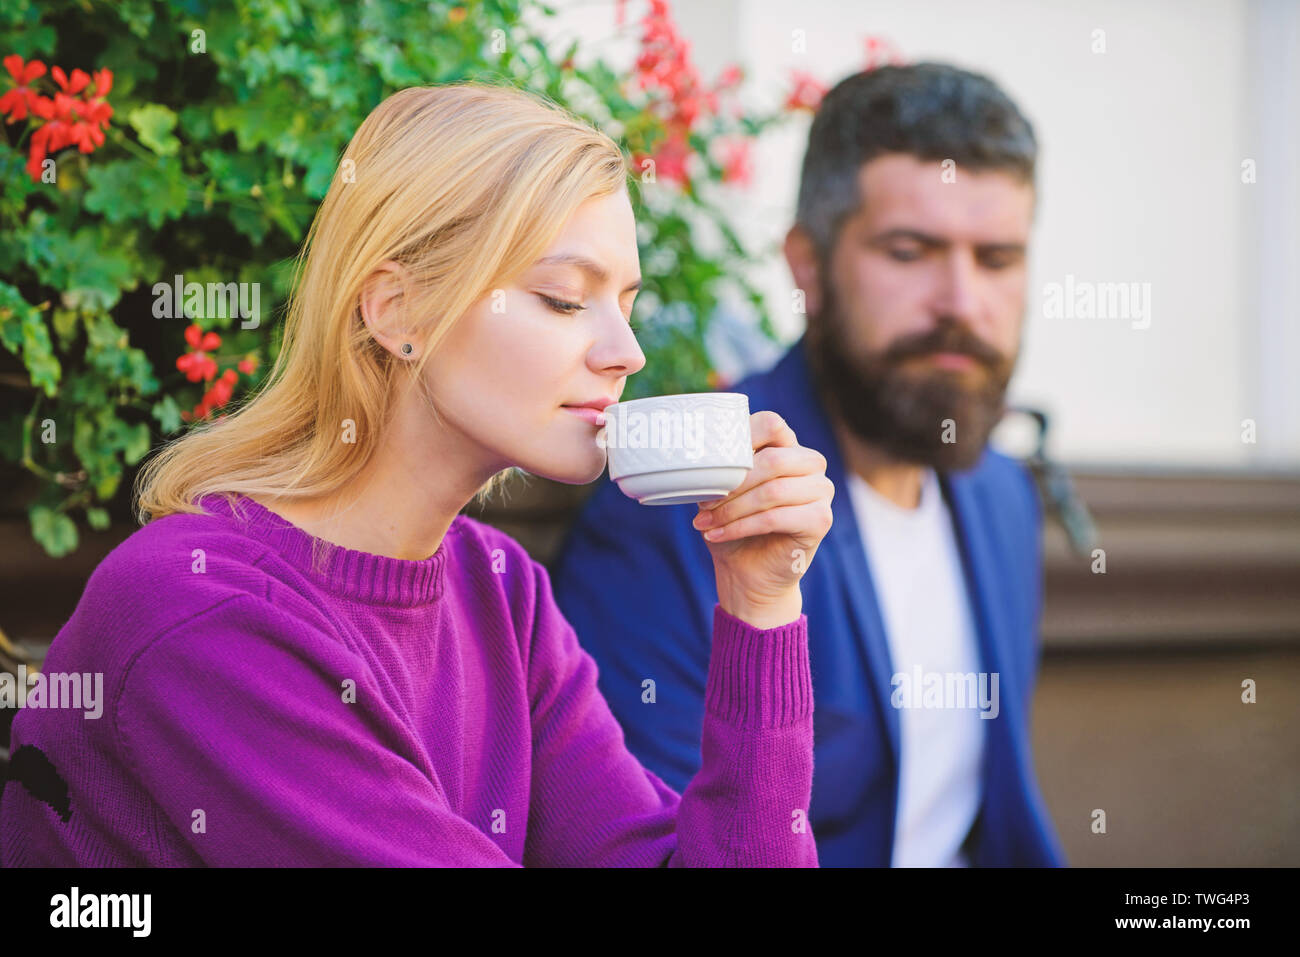 Meeting people first date. Strangers meet become acquaintances. Apps normal way to meet and connect with other single people. Couple terrace drinking coffee. Casual meet acquaintance public place. - Stock Image